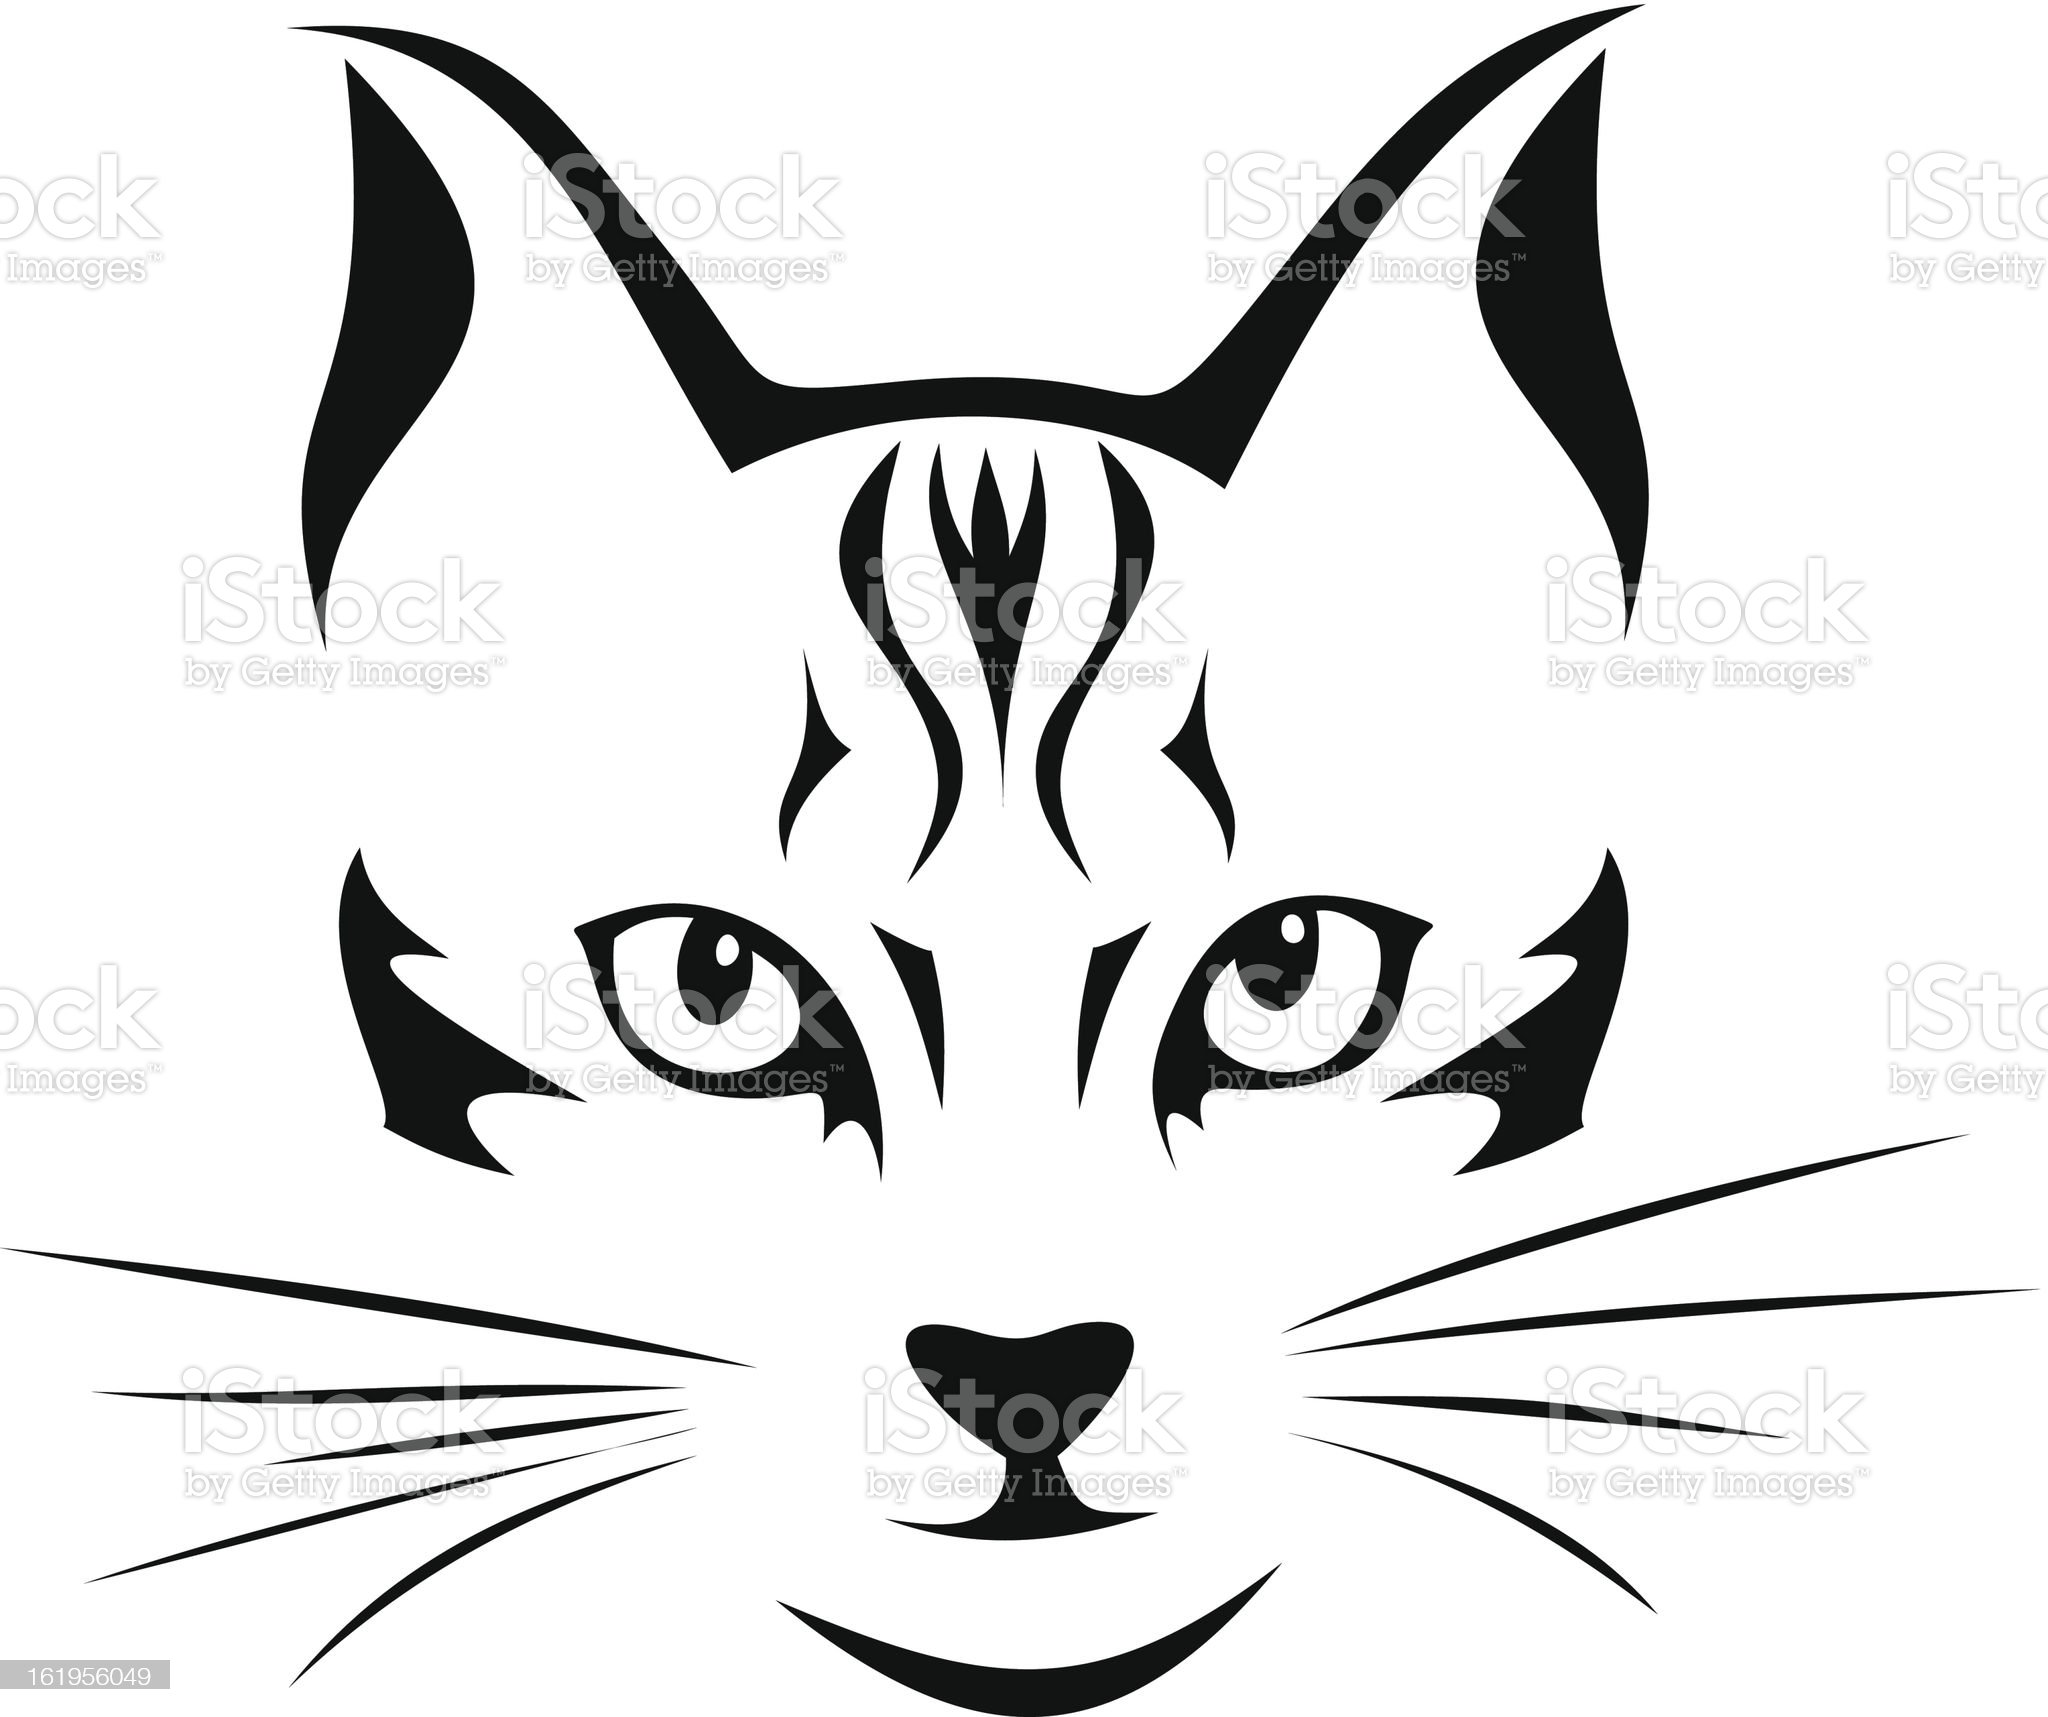 Black silhouette of cat. Vector illustration. royalty-free stock vector art